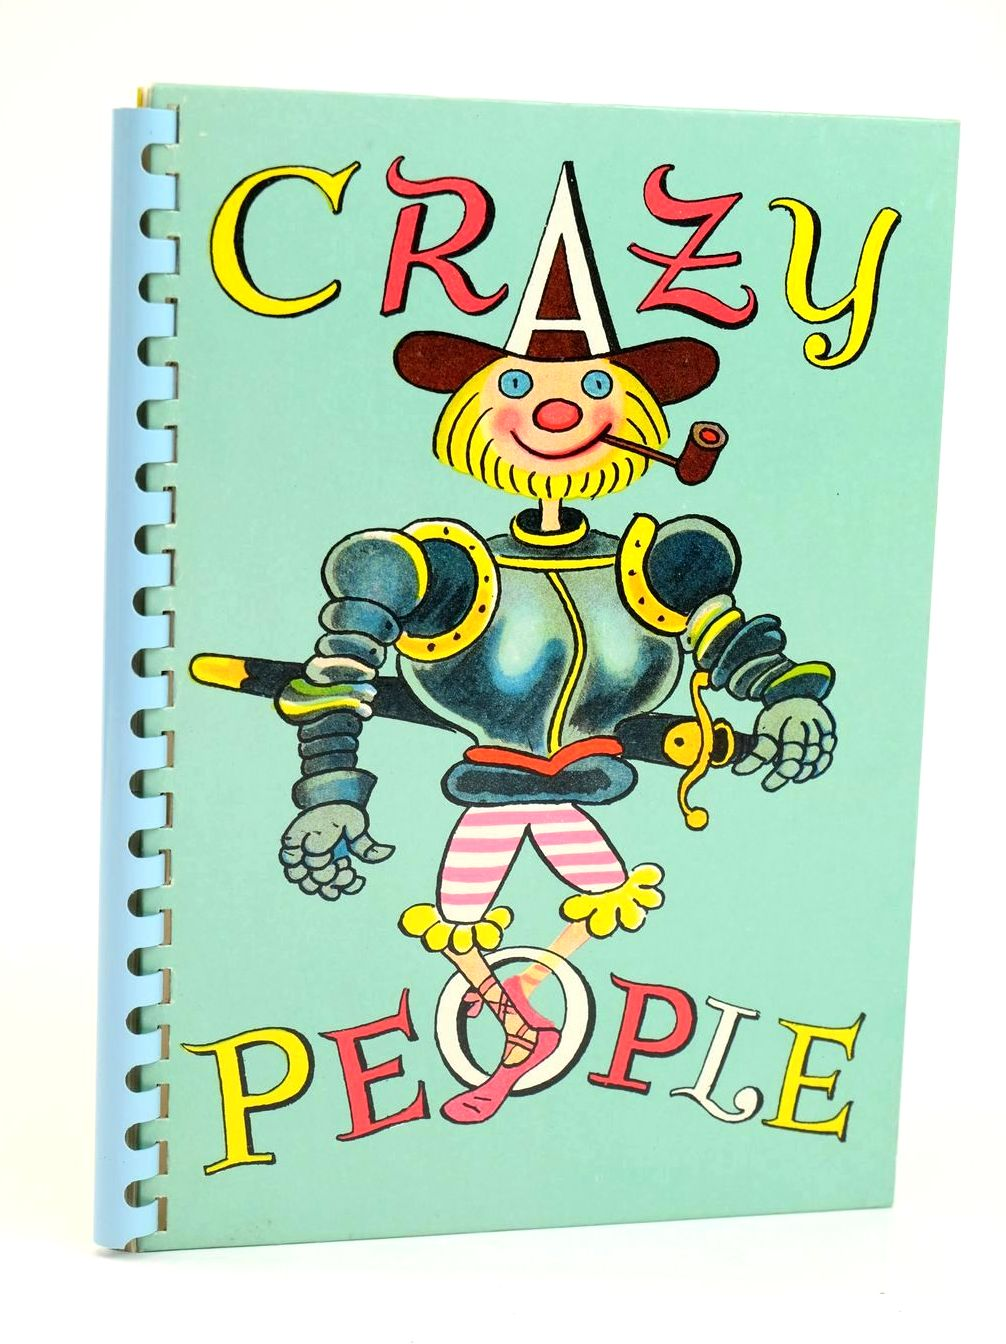 Photo of 8192 CRAZY PEOPLE illustrated by Trier, Walter published by Atrium Press Ltd. (STOCK CODE: 1319355)  for sale by Stella & Rose's Books